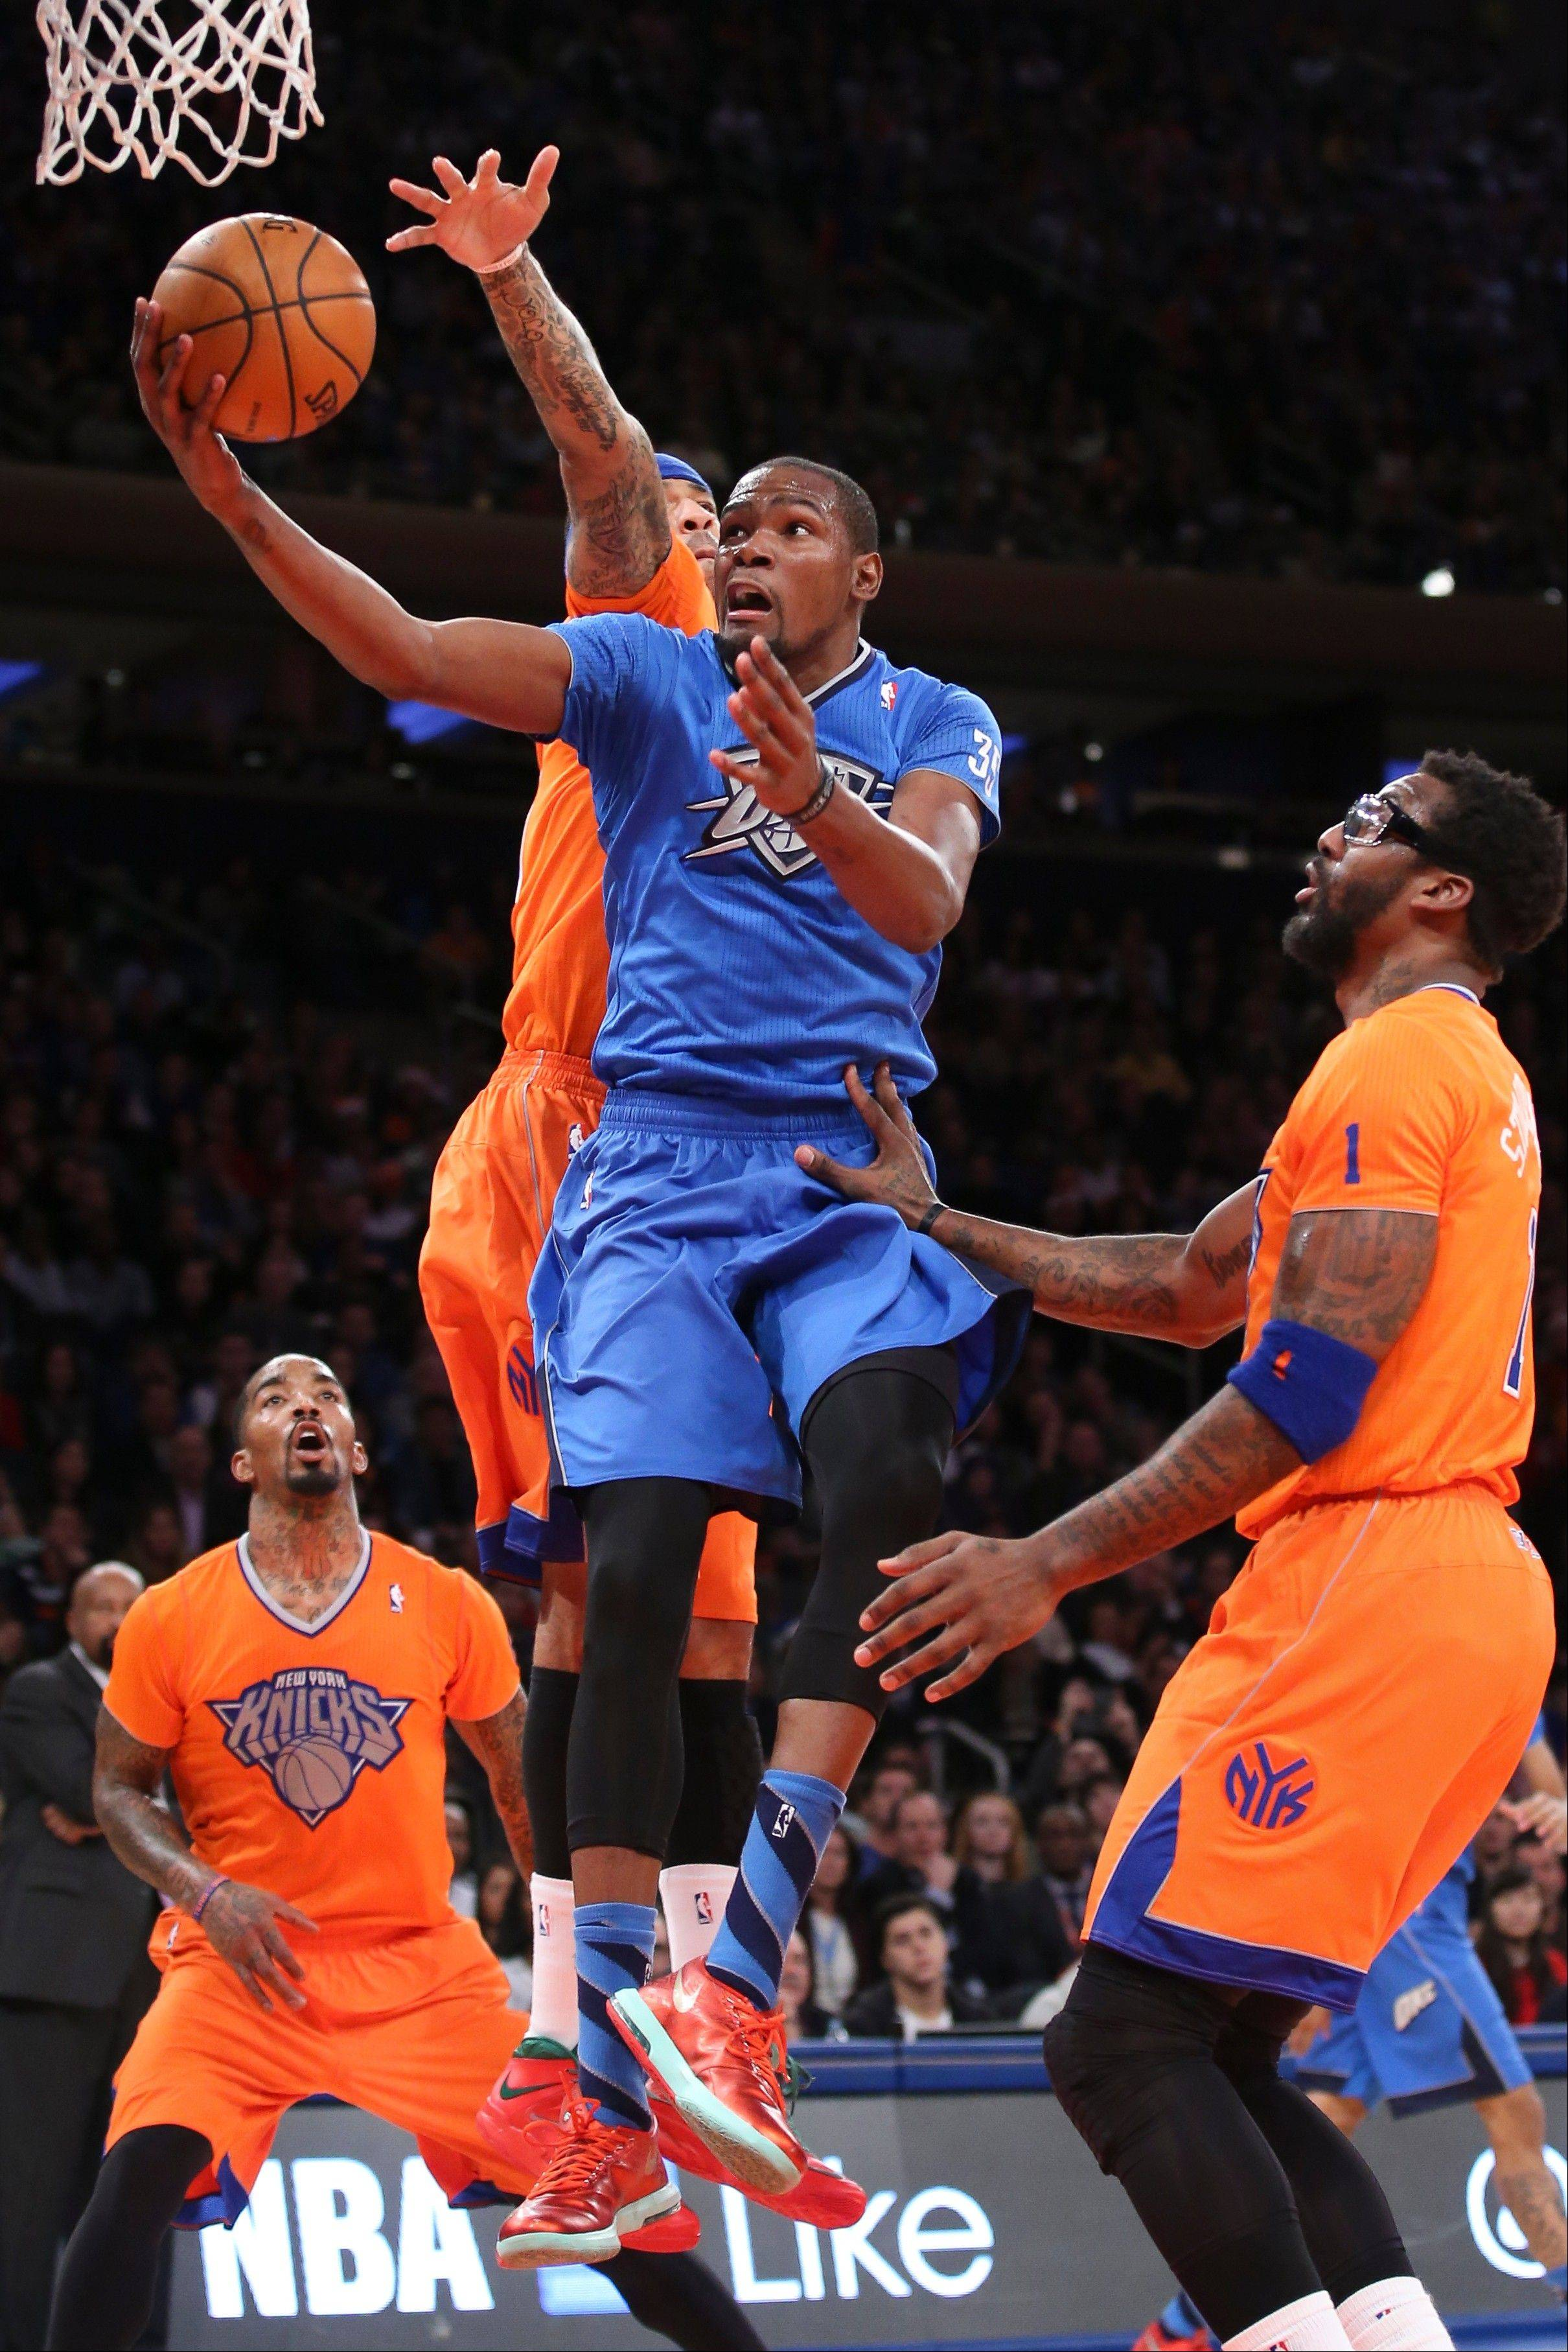 Oklahoma City Thunder forward Kevin Durant shoots against New York Knicks forward Kenyon Martin, center, as guard J.R. Smith, left, and forward Amare Stoudemire watch during the second half of Wednesday's game at Madison Square Garden.